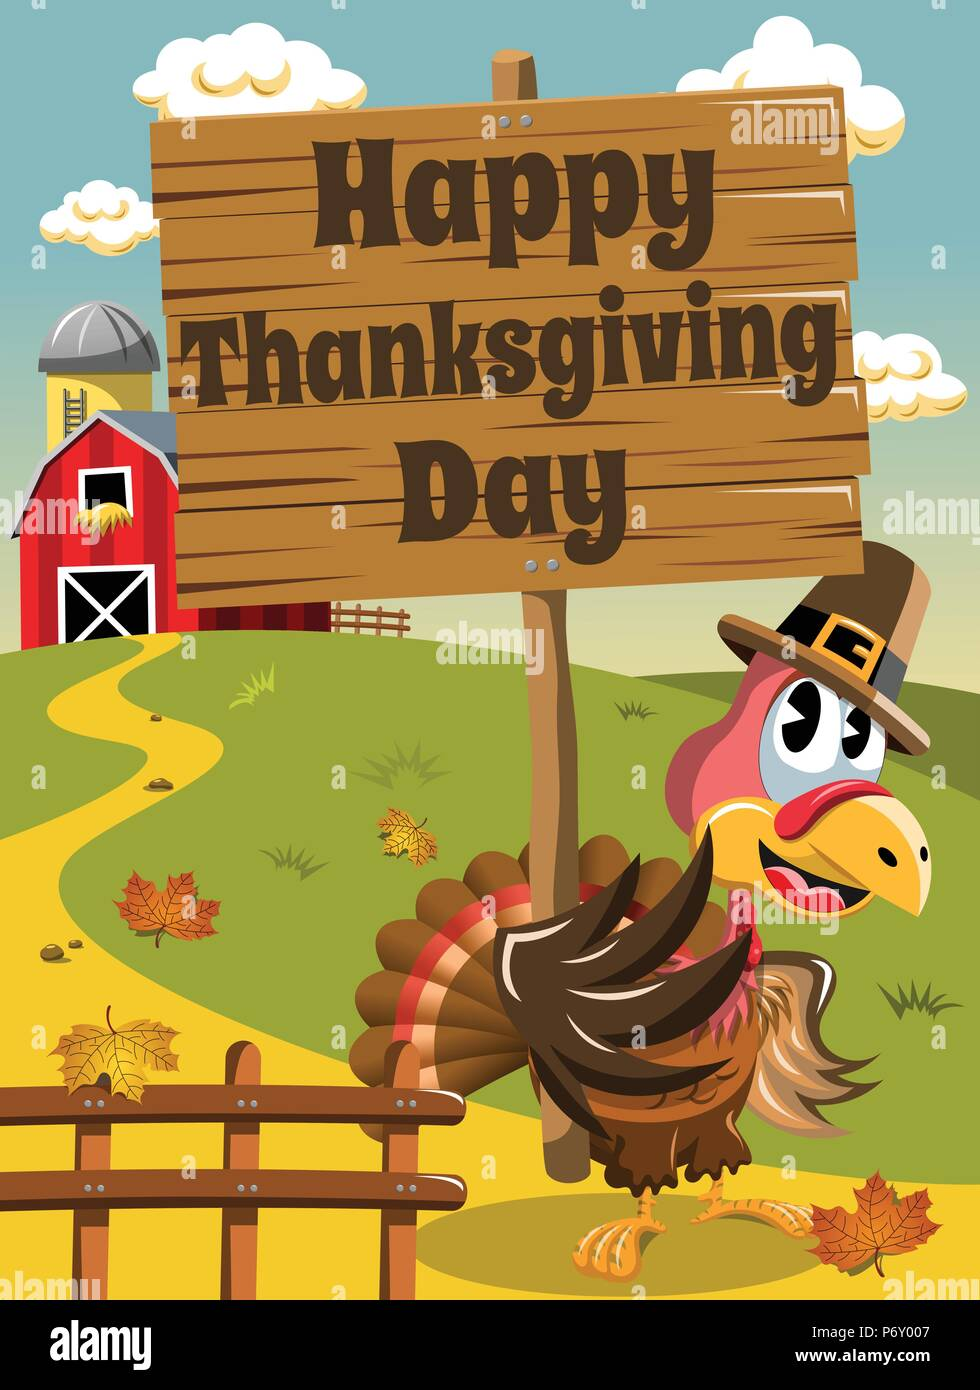 Thanksgiving Day Background Pilgrim Turkey Holding Wooden Banner In The Countryside Stock Vector Image Art Alamy